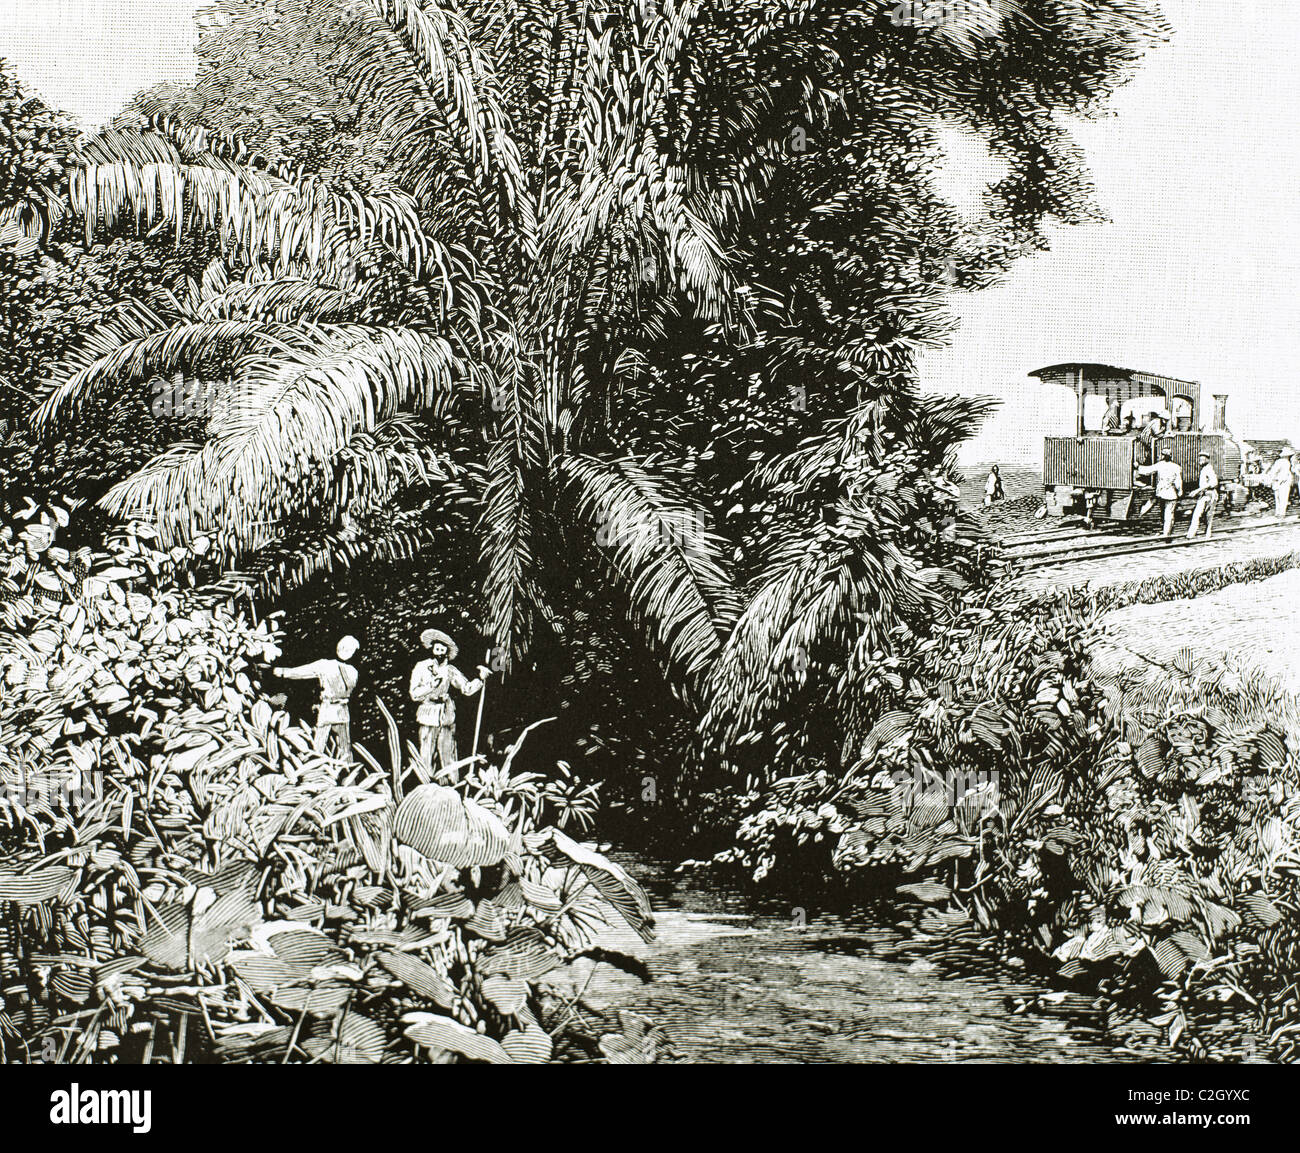 Africa. Congo. Construction of the railway in the territory colonized by Belgium. Engraving in 1892. - Stock Image